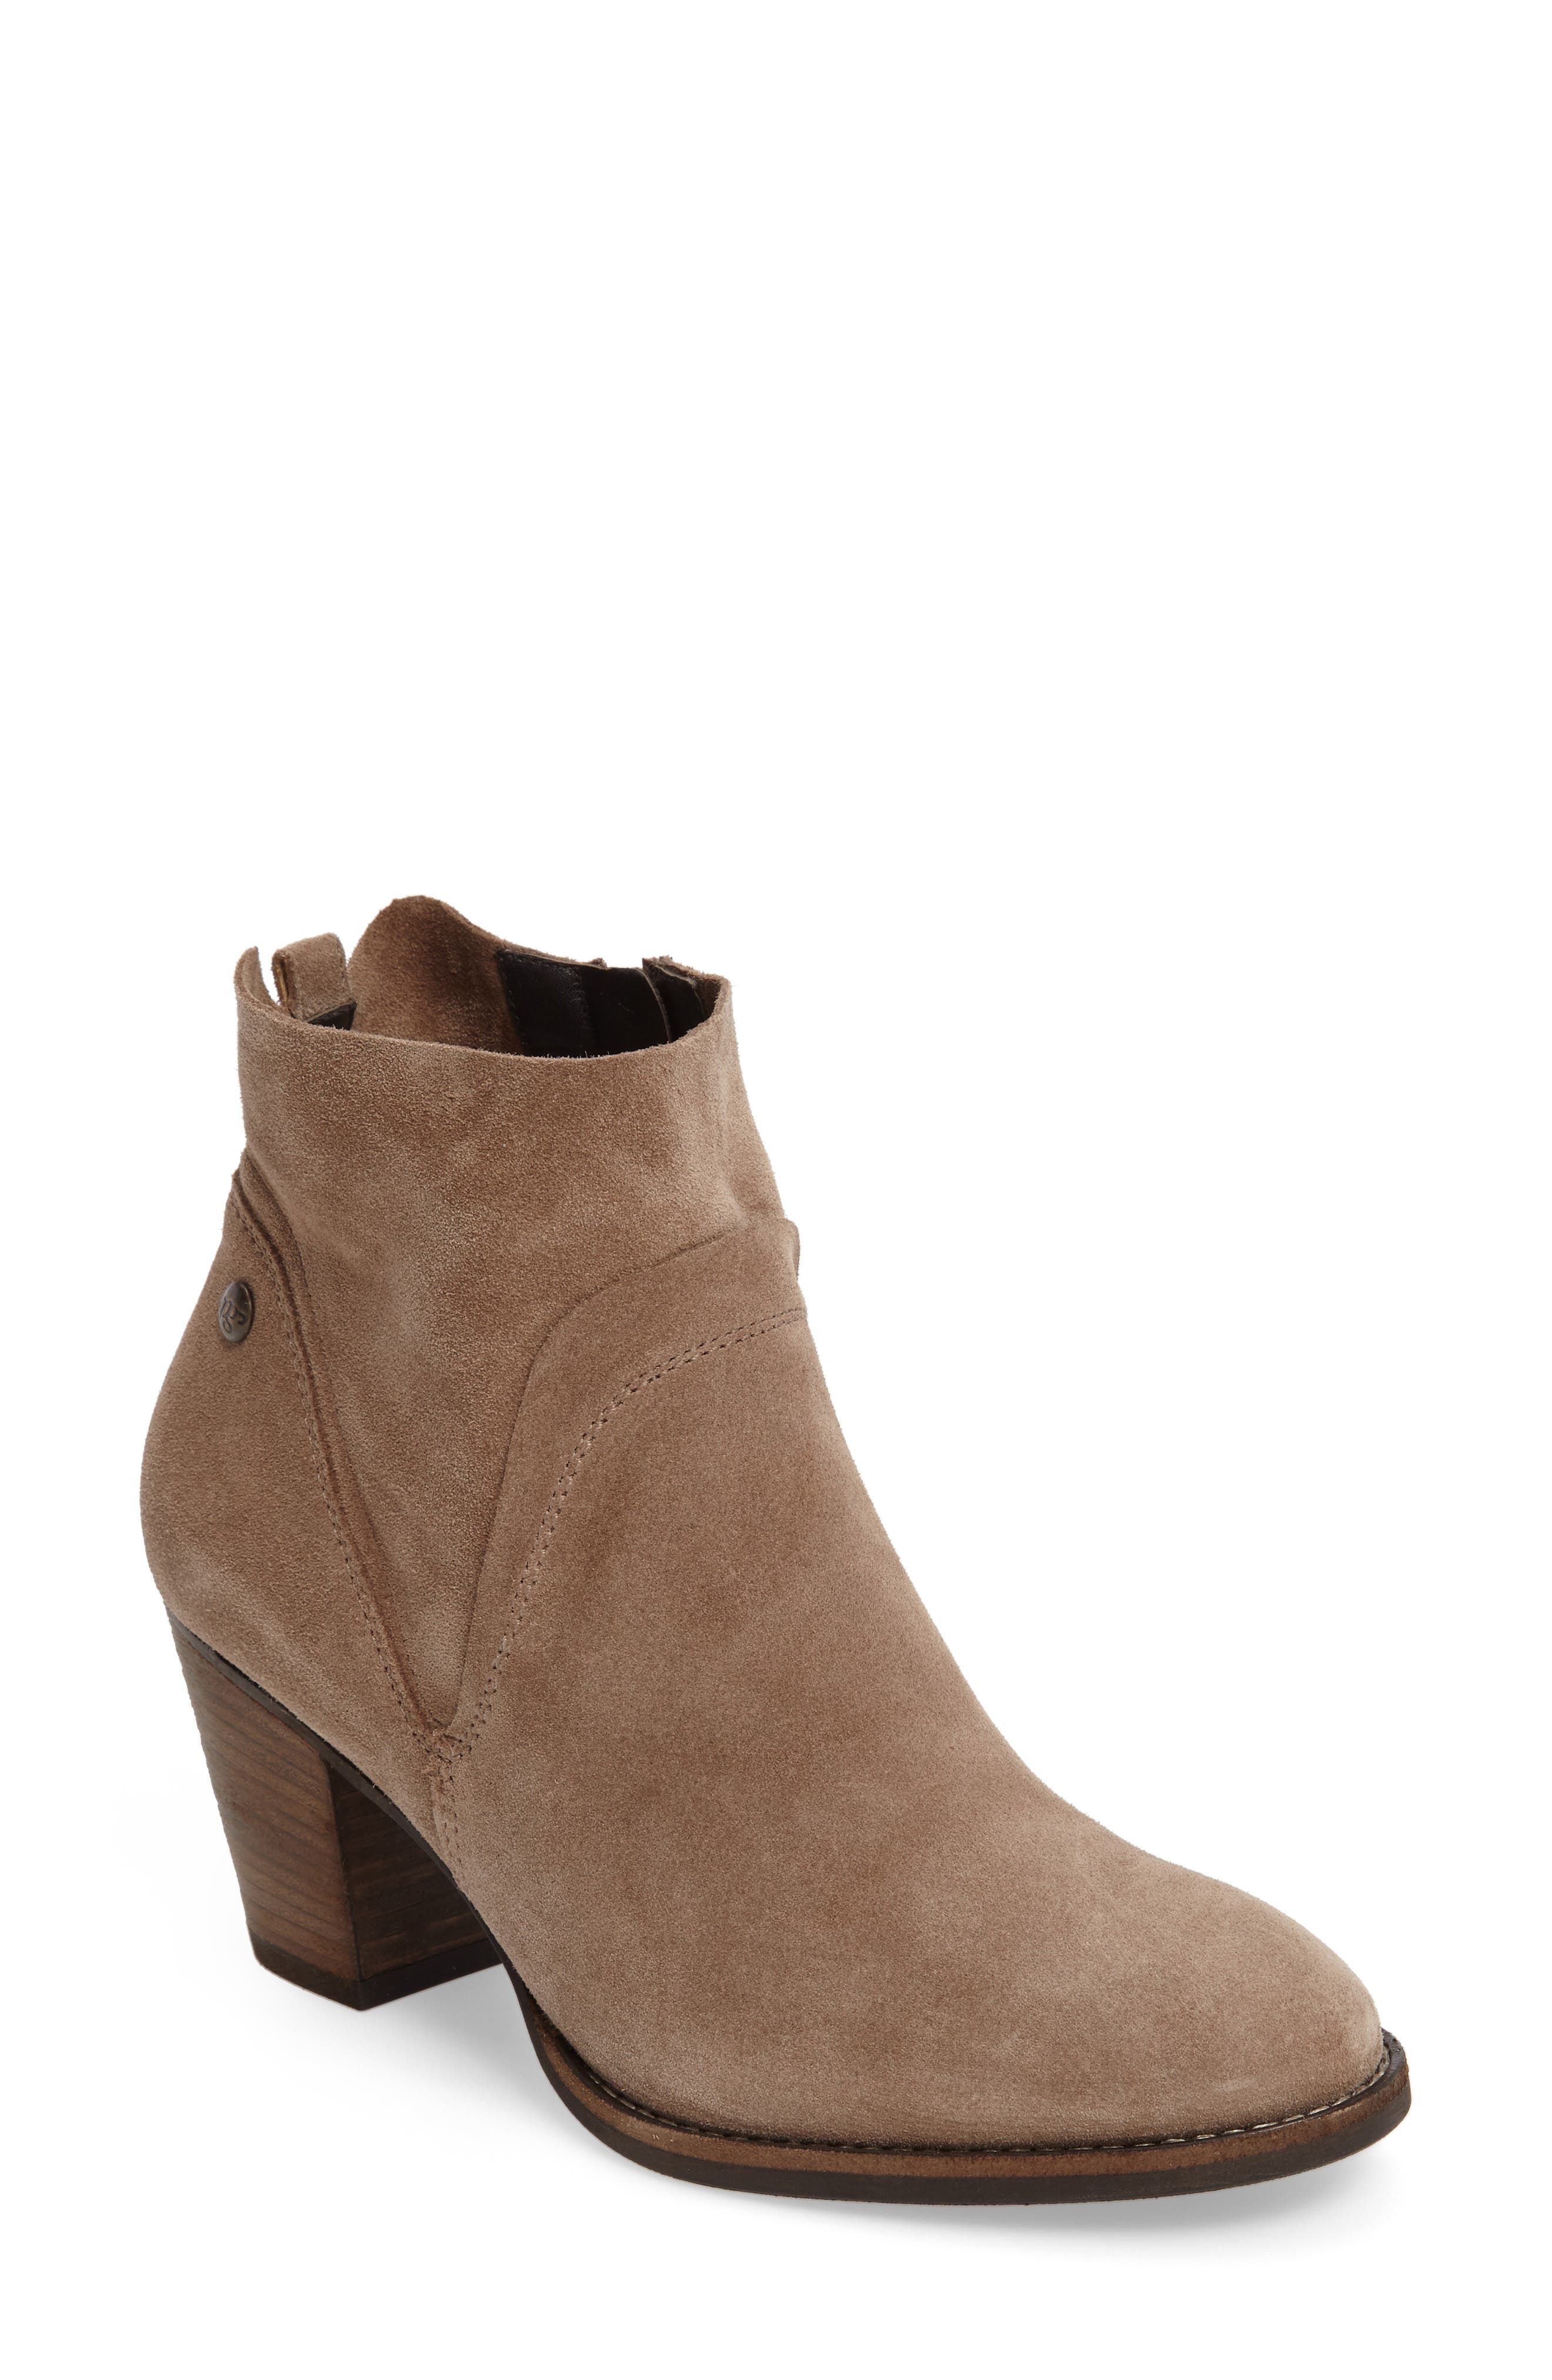 Nora Water Resistant Bootie,                             Main thumbnail 1, color,                             Antelope Hydro Suede